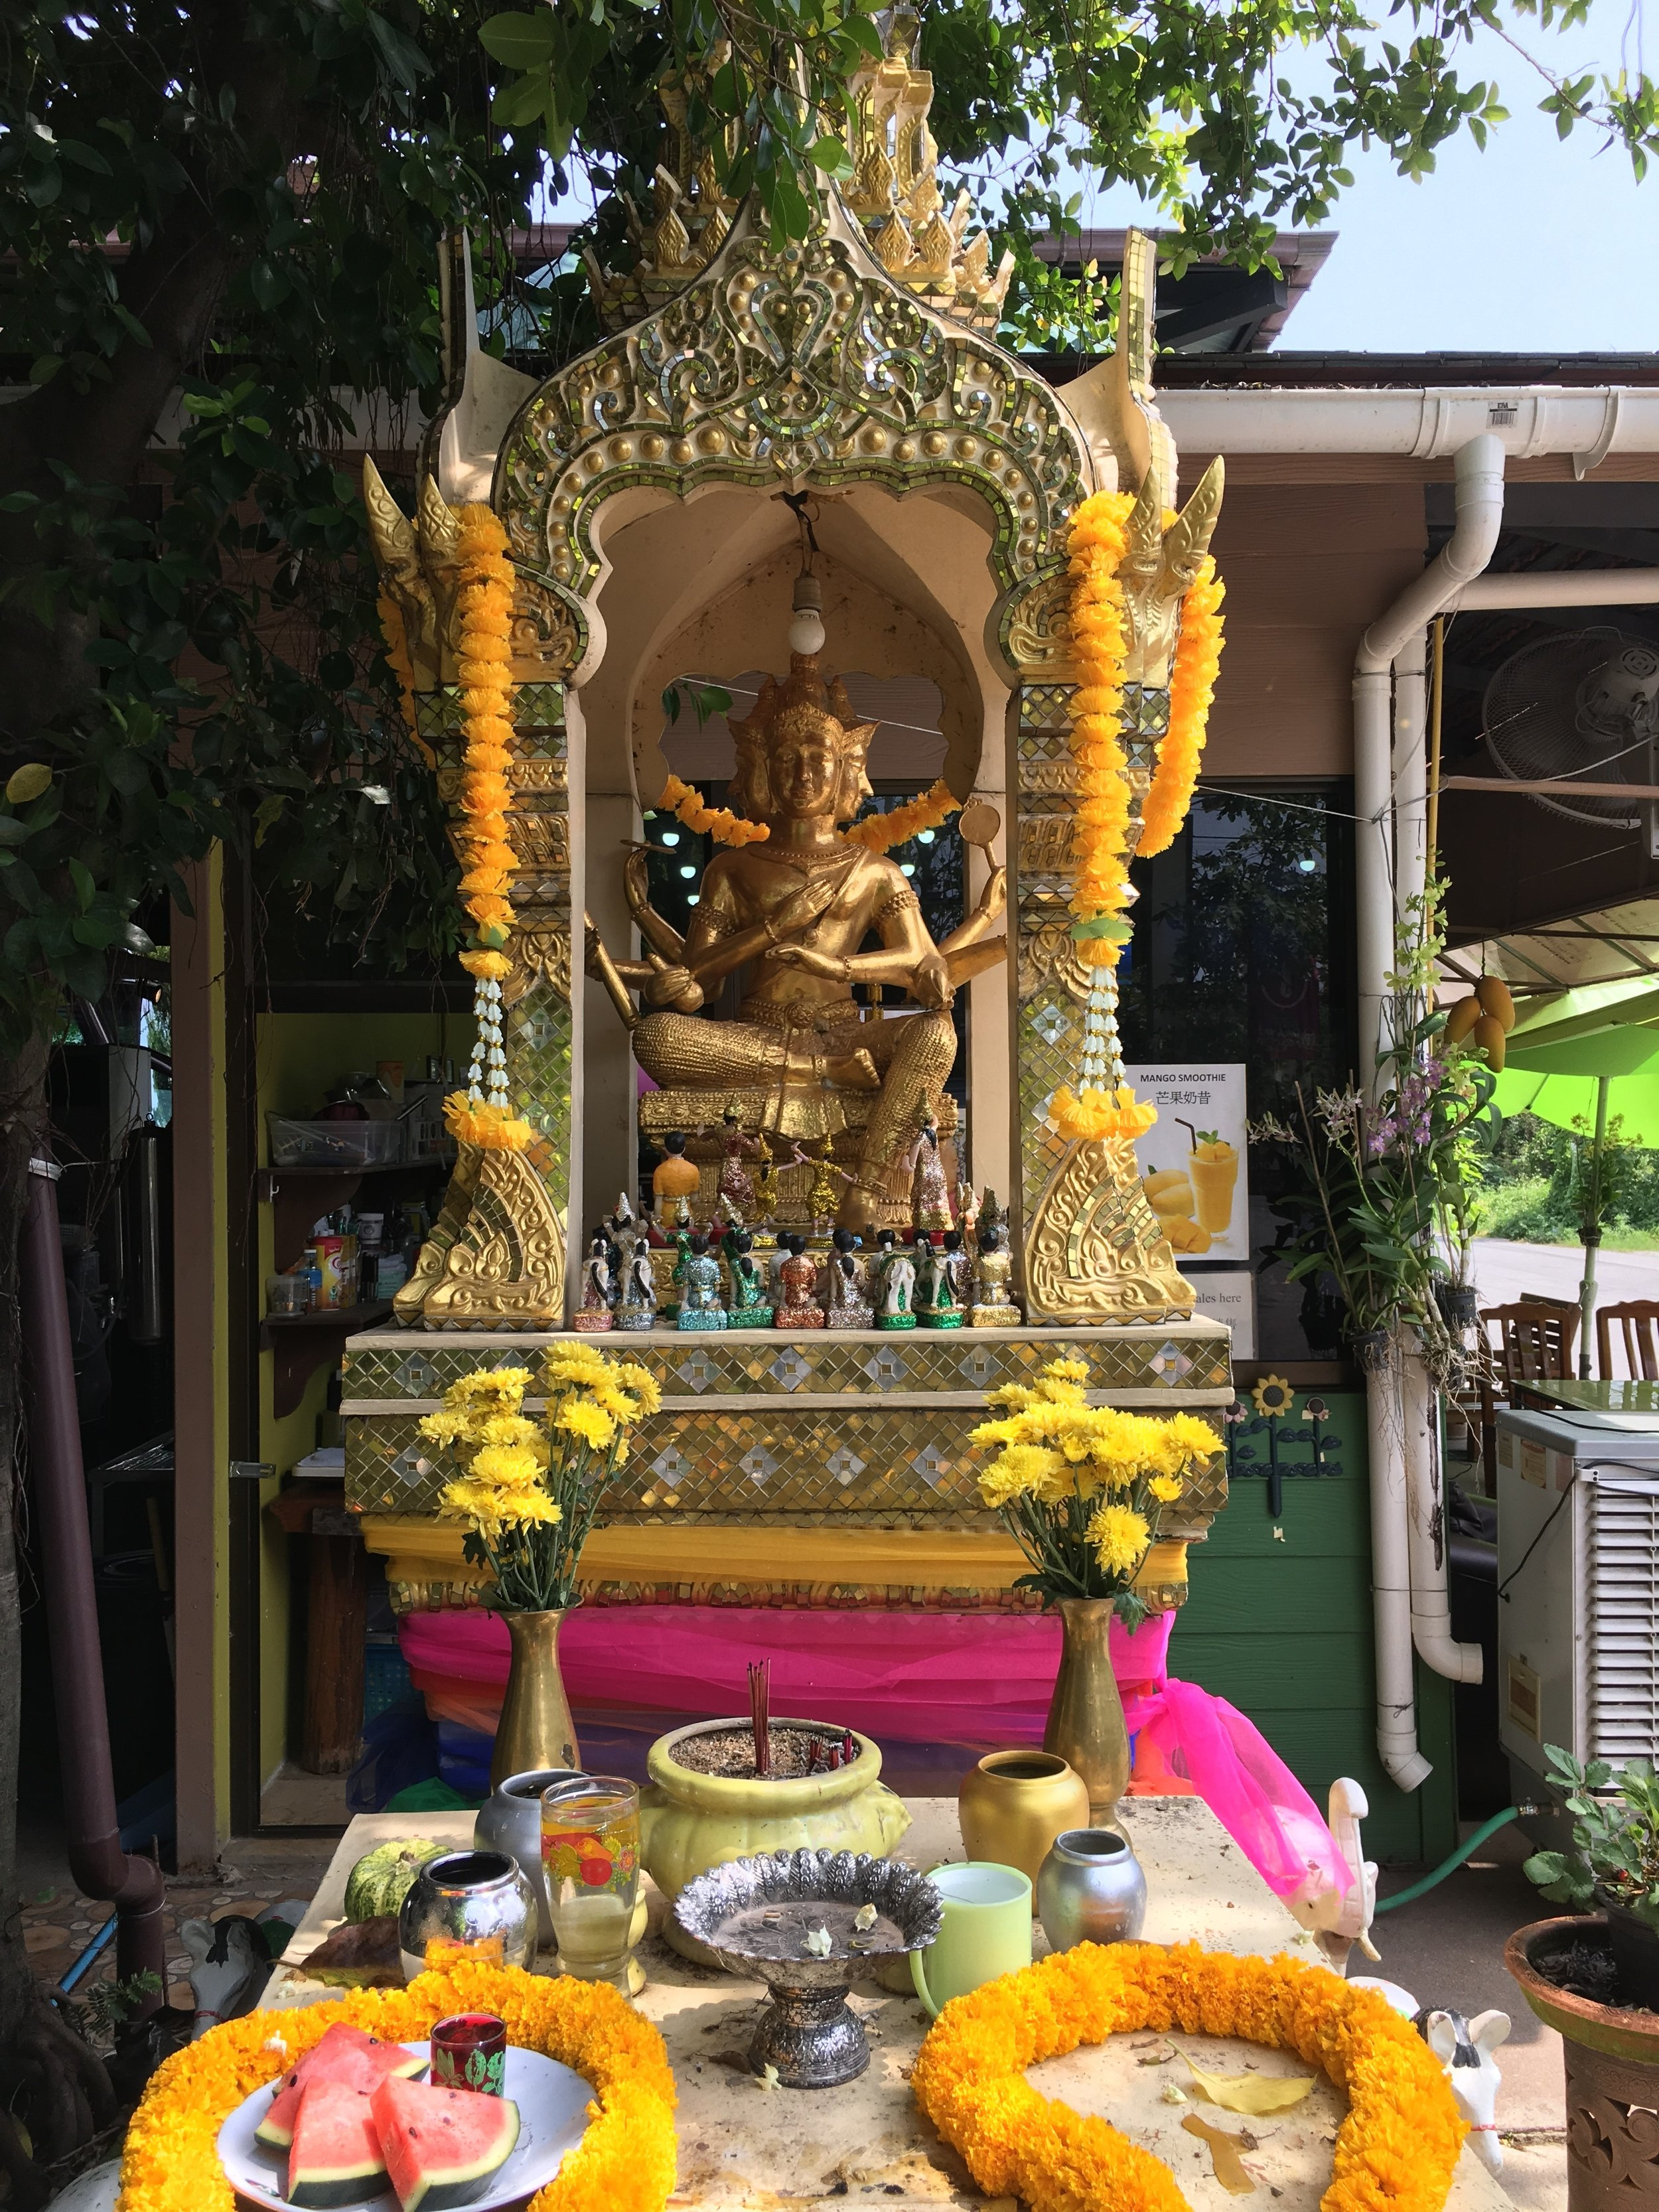 The four-faced Hindu god Brahma is a popular figure in spirit houses, especially in the Bangkok area